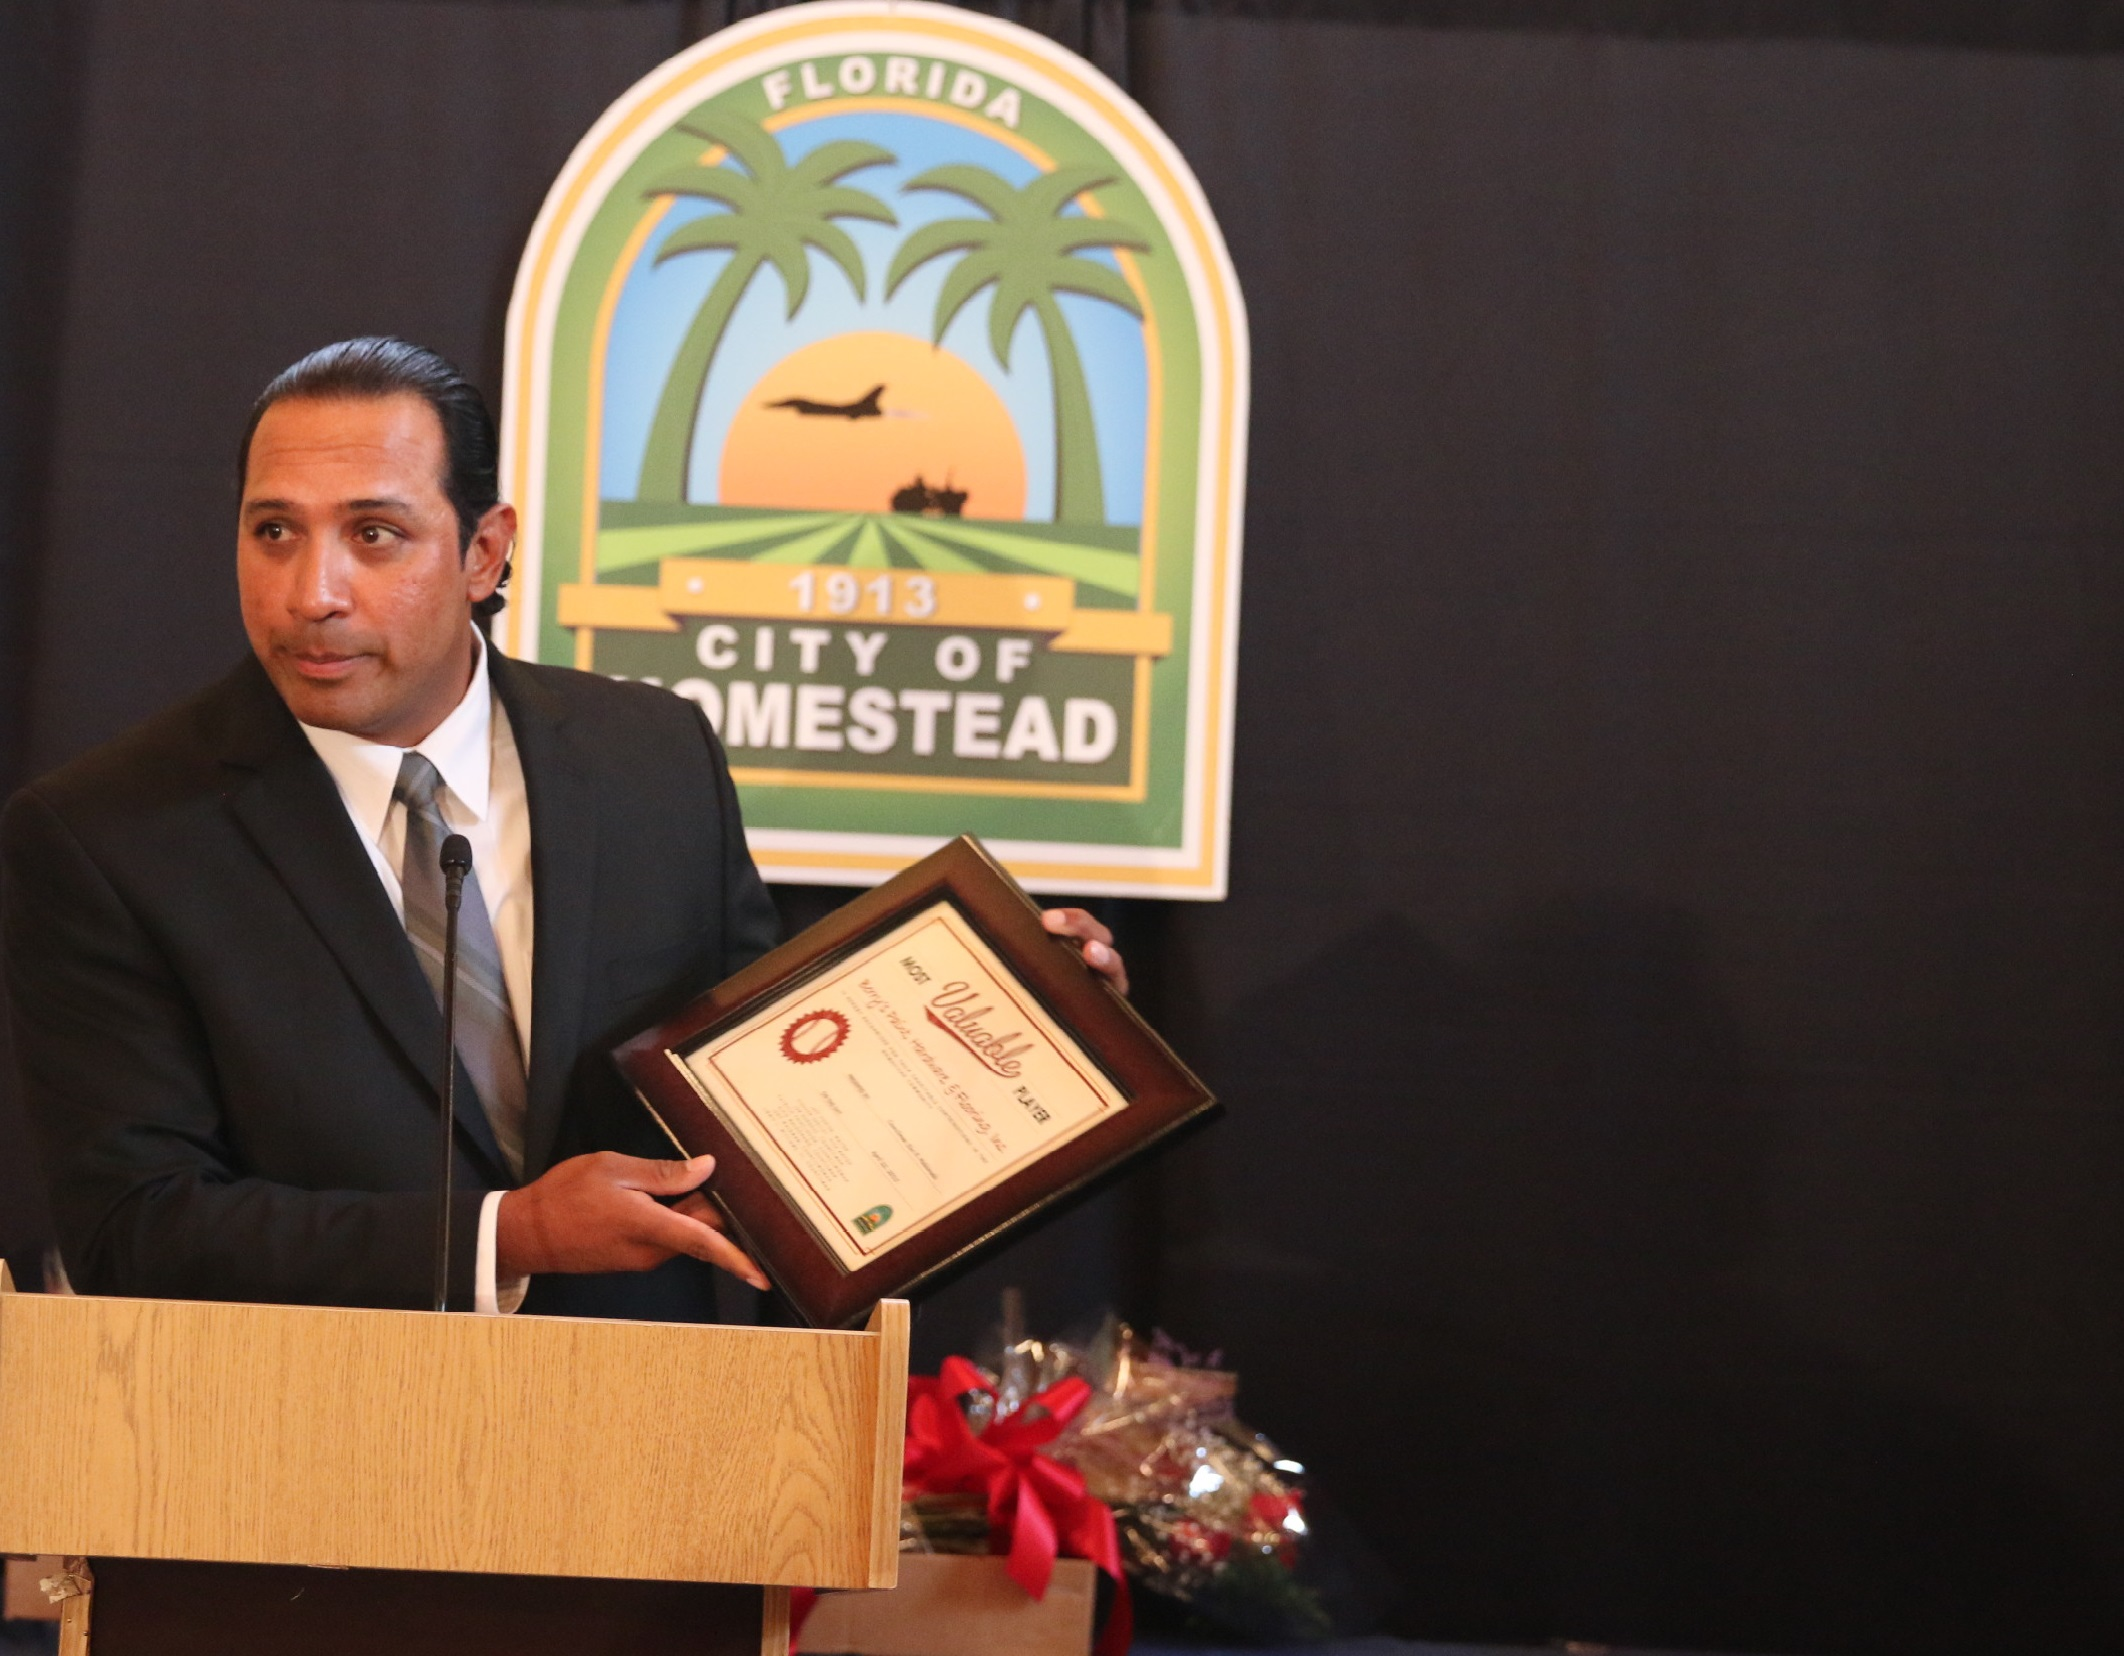 Councilman Maldonado Honors Dennis Berry